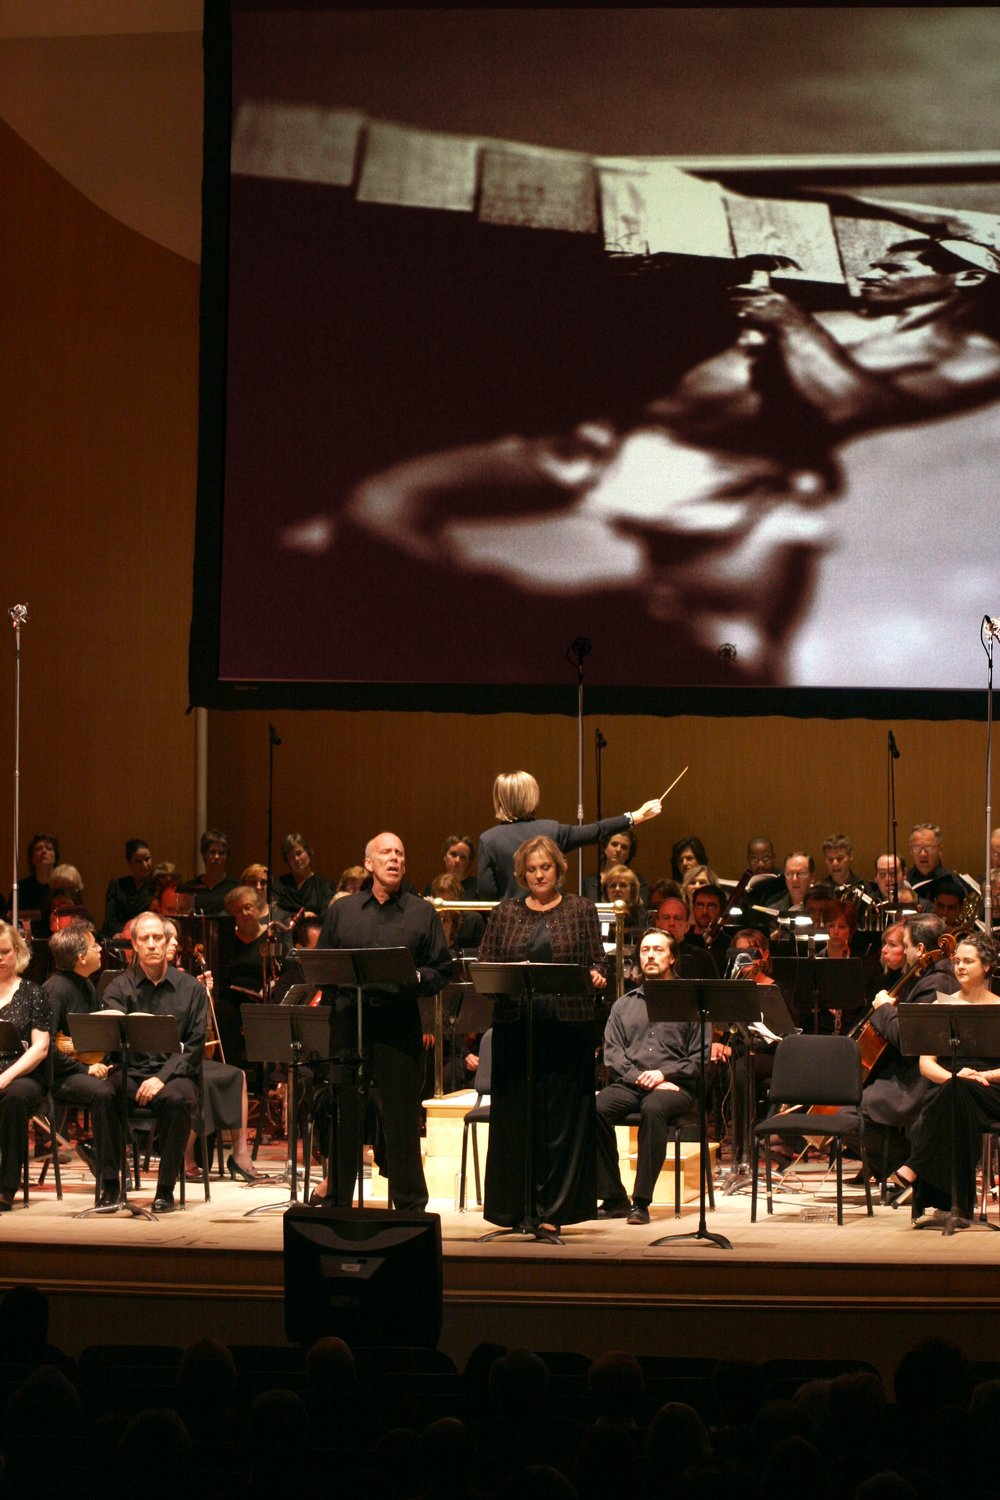 Robert Orth and Brenda Harris as Wright and Mamah Cheney in a concert performance by the Buffalo Philahrmonic released by Naxos.